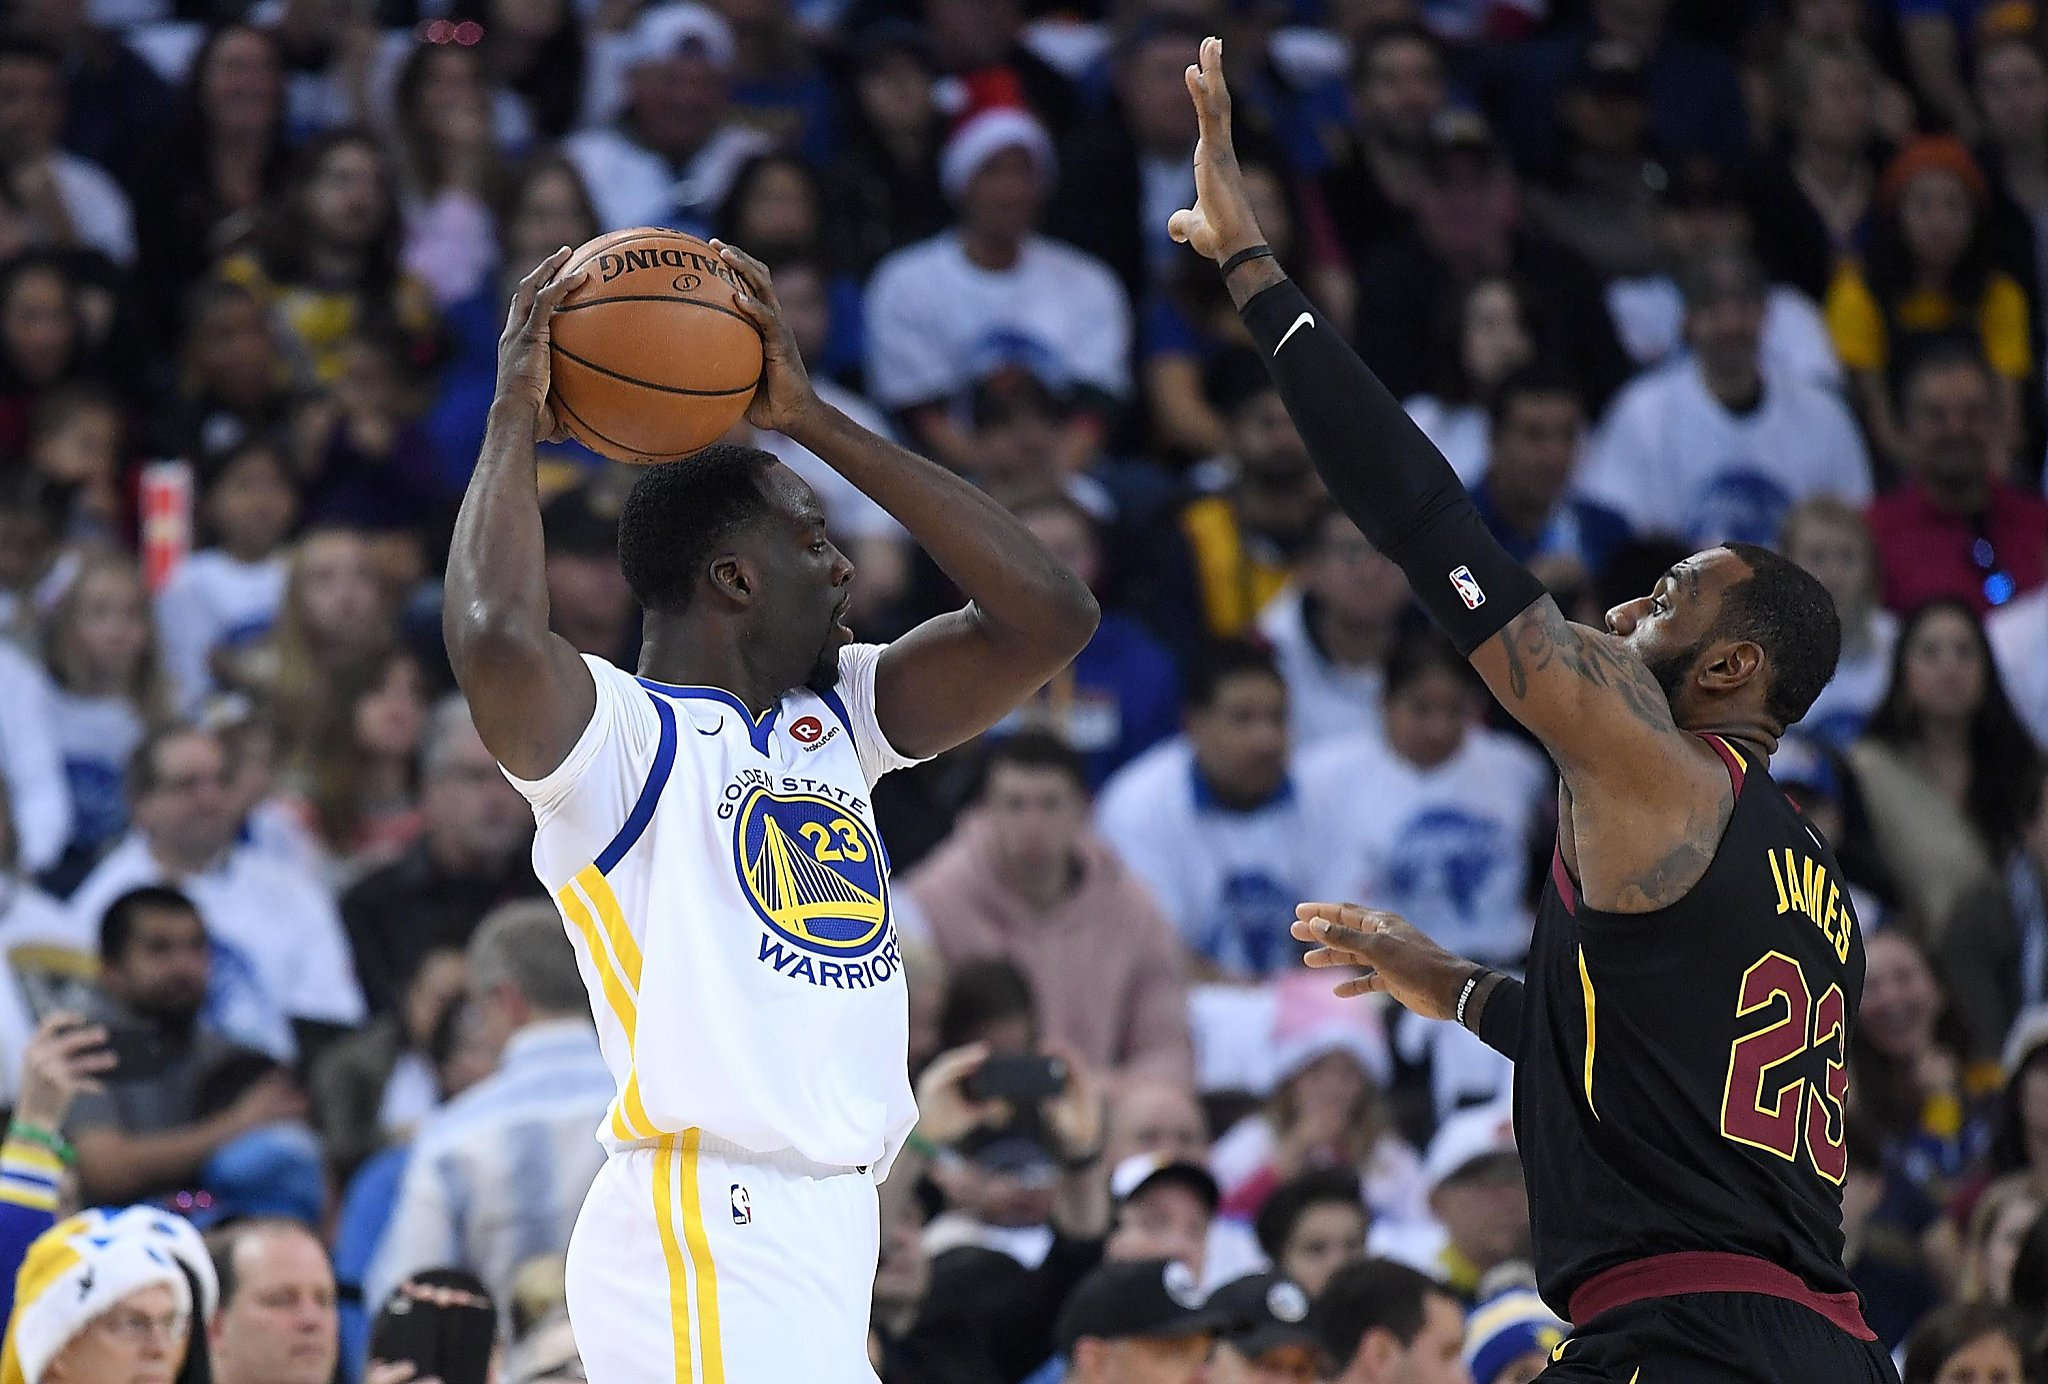 40cc30901de Draymond Green denies that sneakers were intended to troll LeBron James -  SFChronicle.com